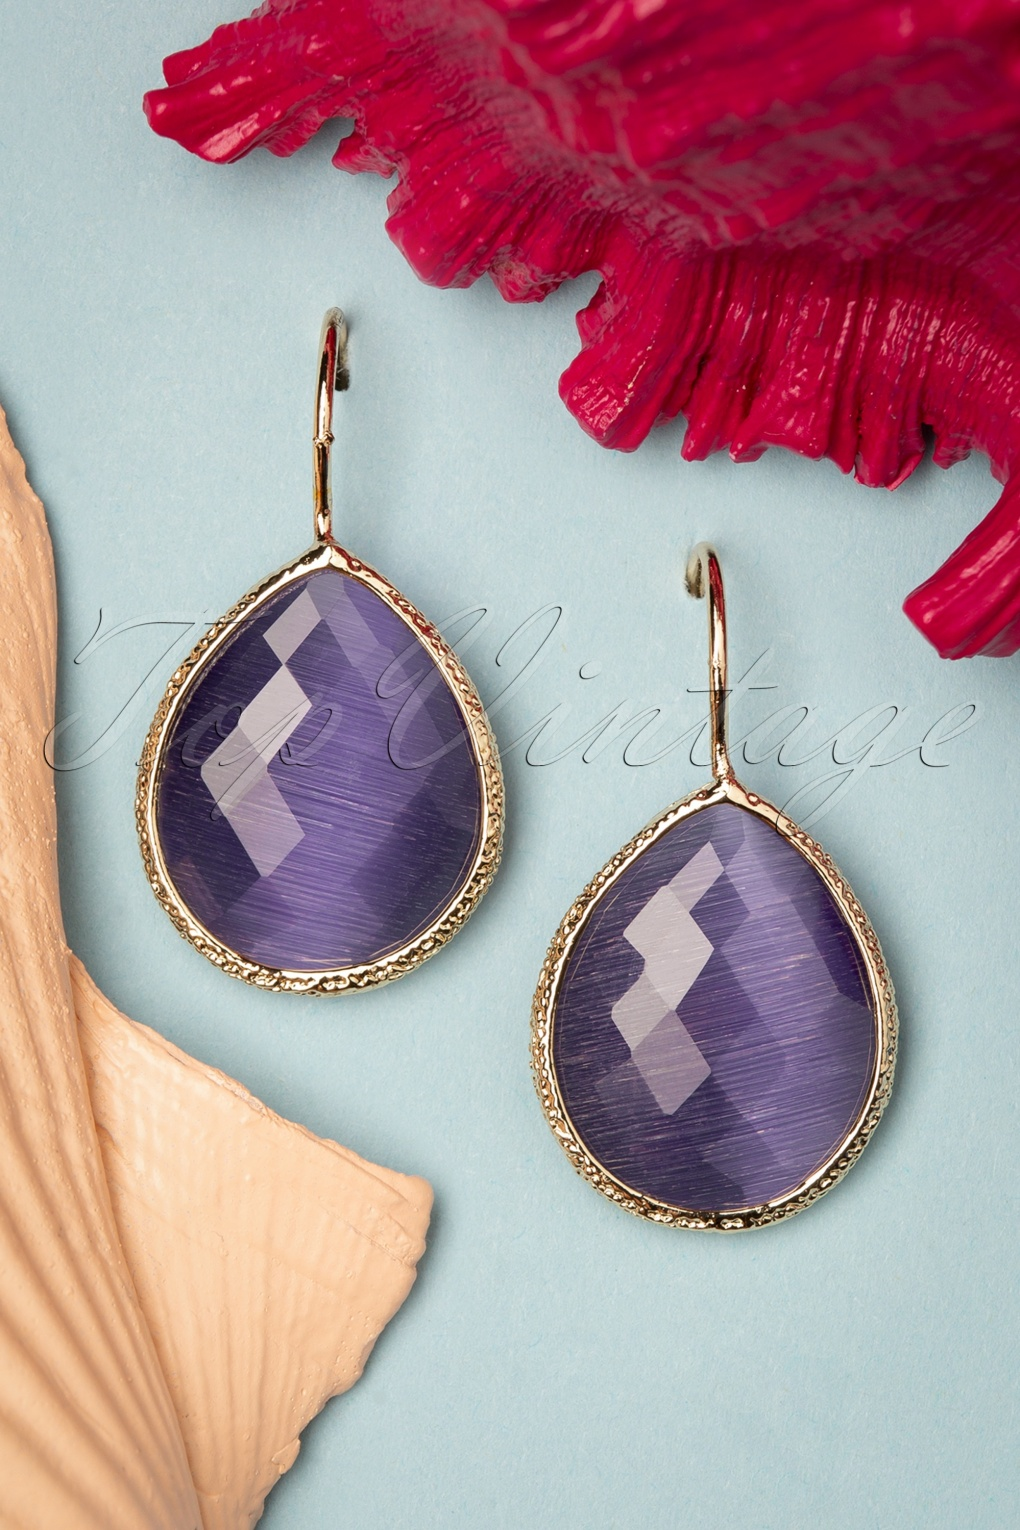 Vintage Style Jewelry, Retro Jewelry 50s Lavina Stone Drop Earrings in Purple £15.07 AT vintagedancer.com